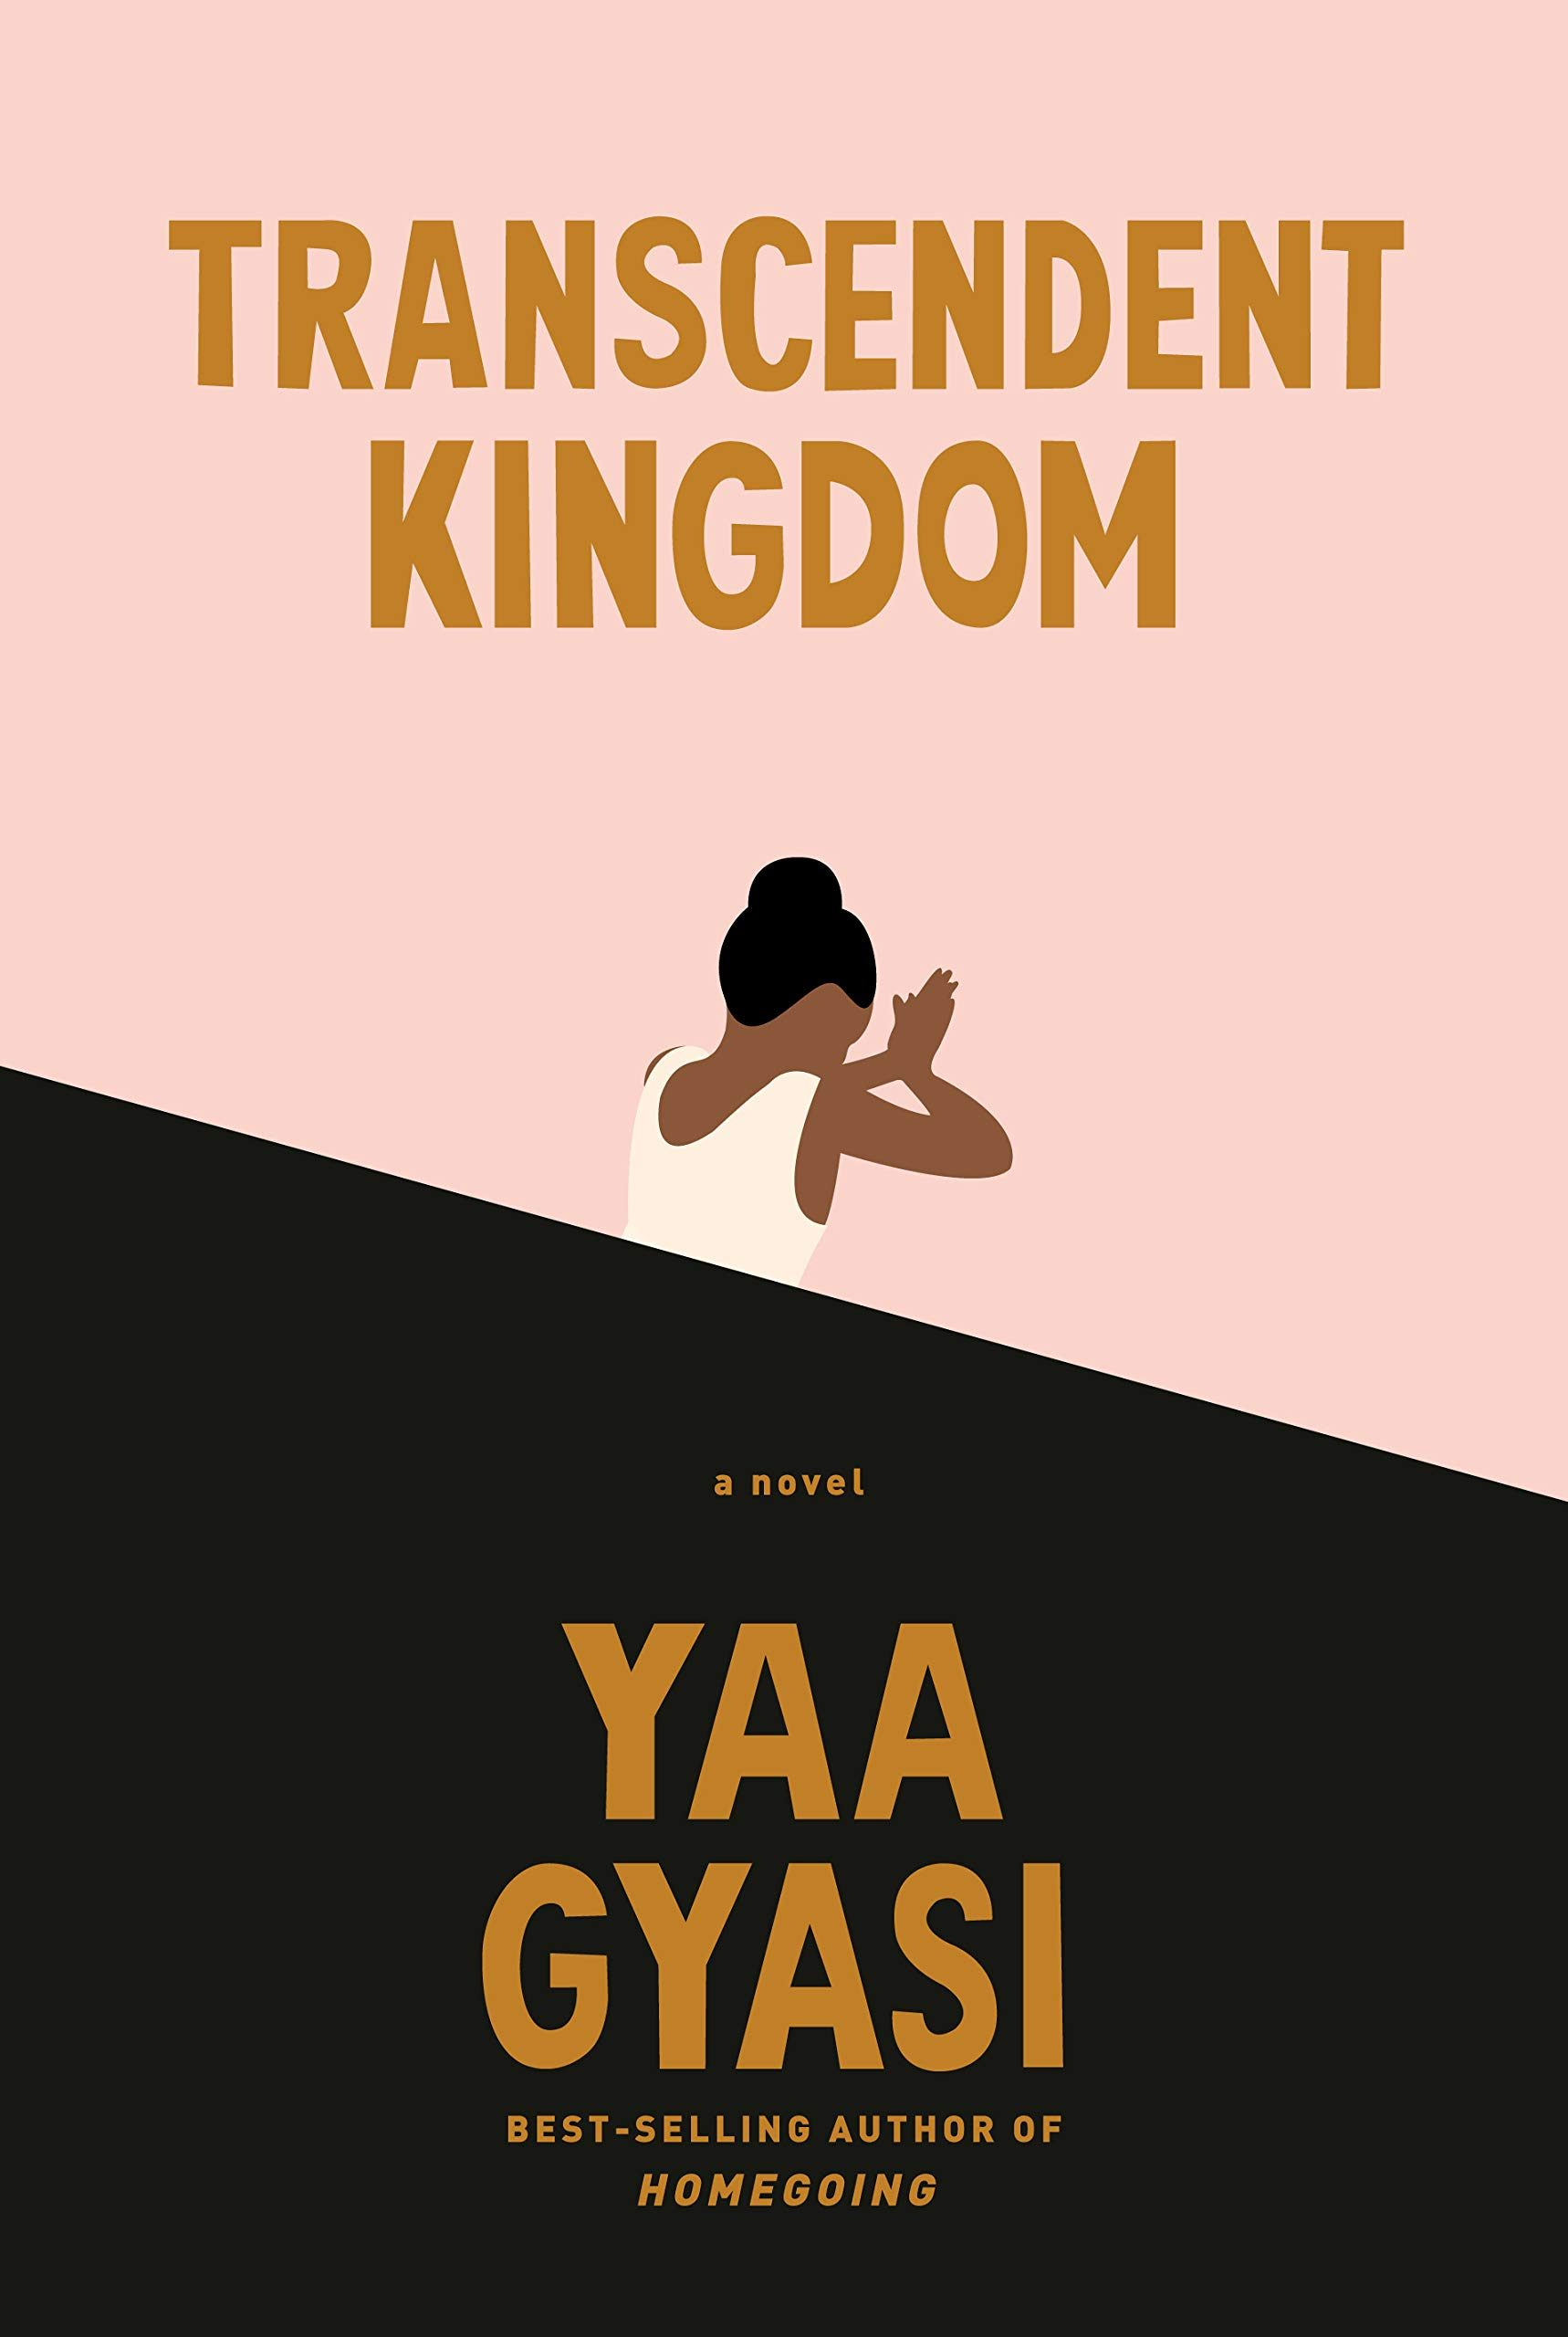 transcendent kingdom by yaa gyasi